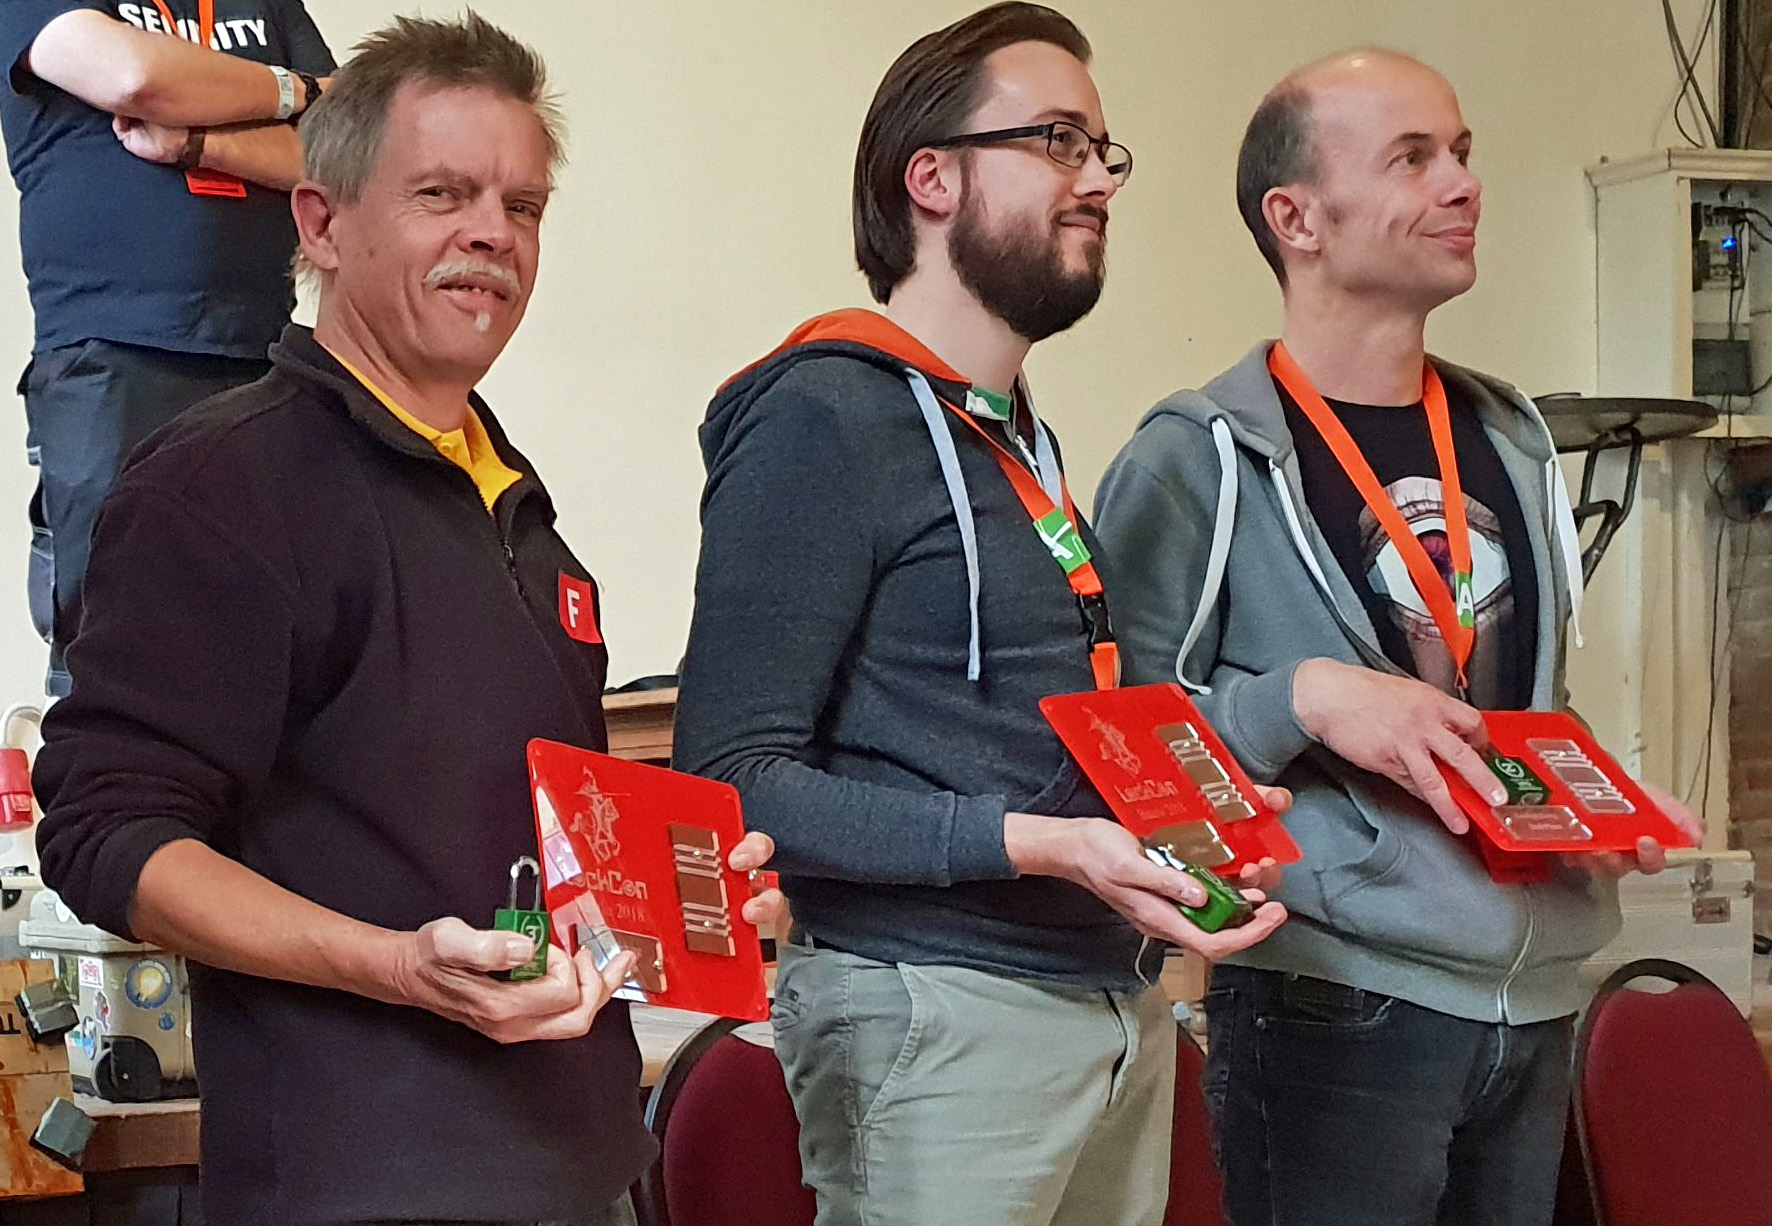 Lockpicking winners